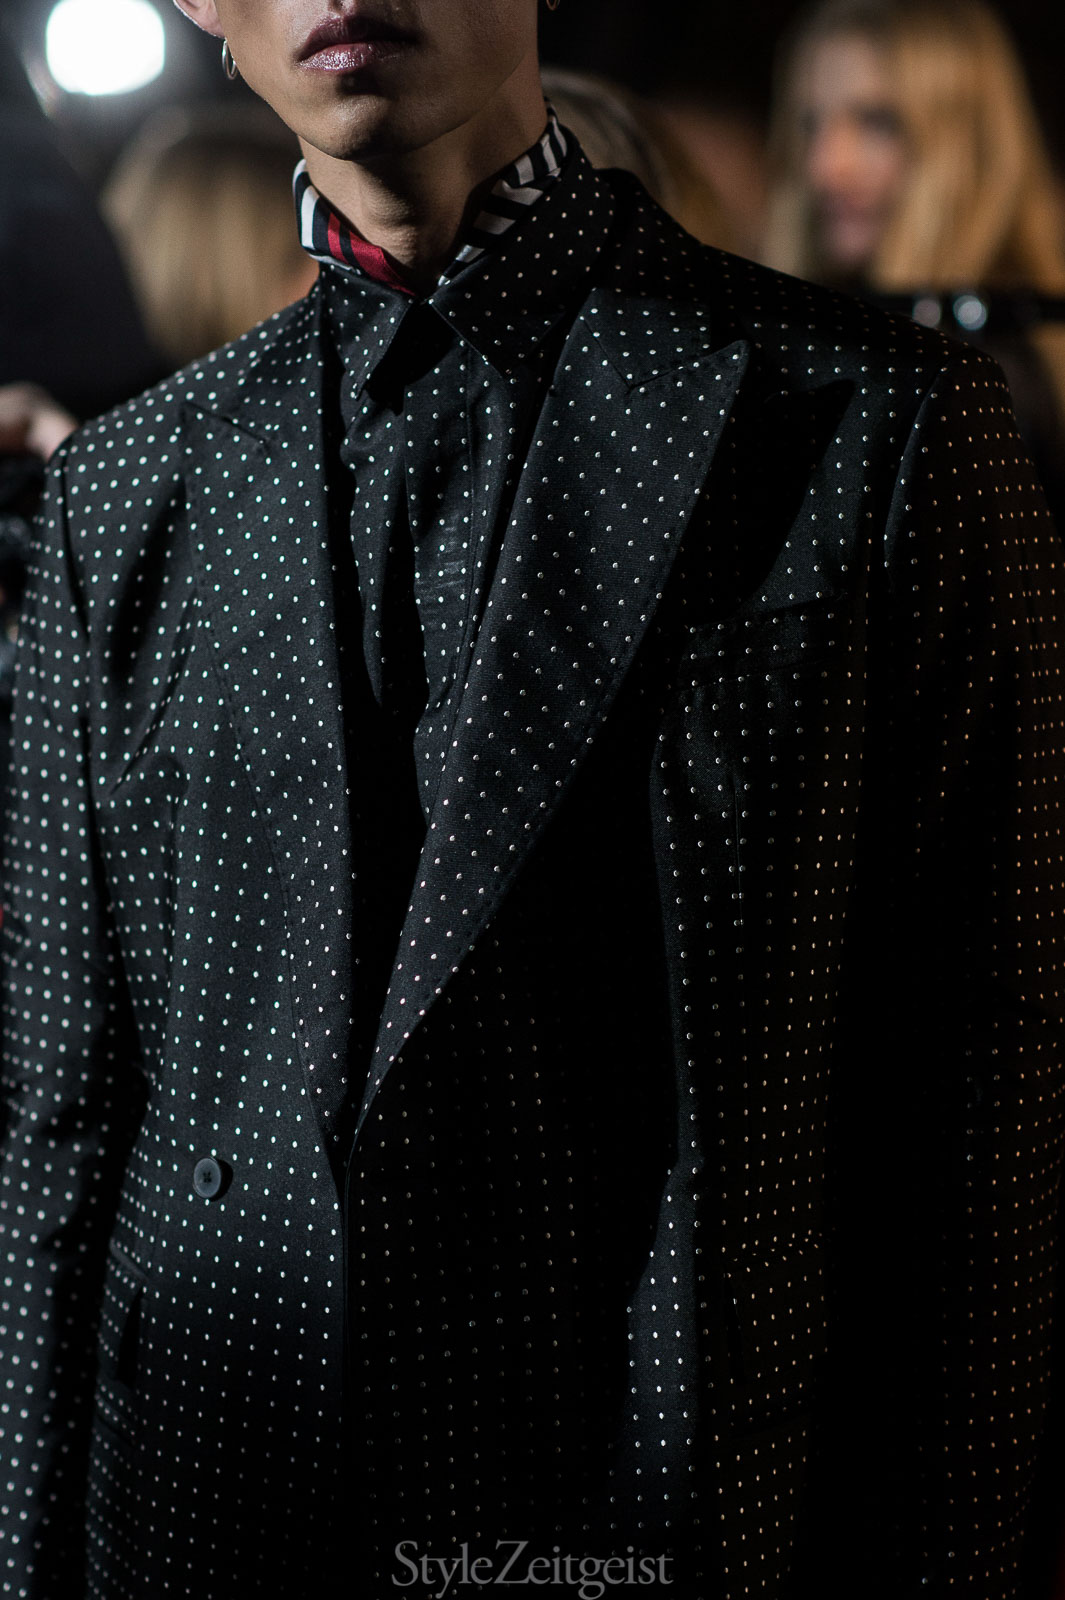 Haider Ackermann F/W17 Men's - Paris Backstage - fashion - StyleZeitgeist, Patrick LaDuke, Paris, MENSWEAR, Haider Ackermann, FW17, Fashion, Fall Winter, Backstage, 2017